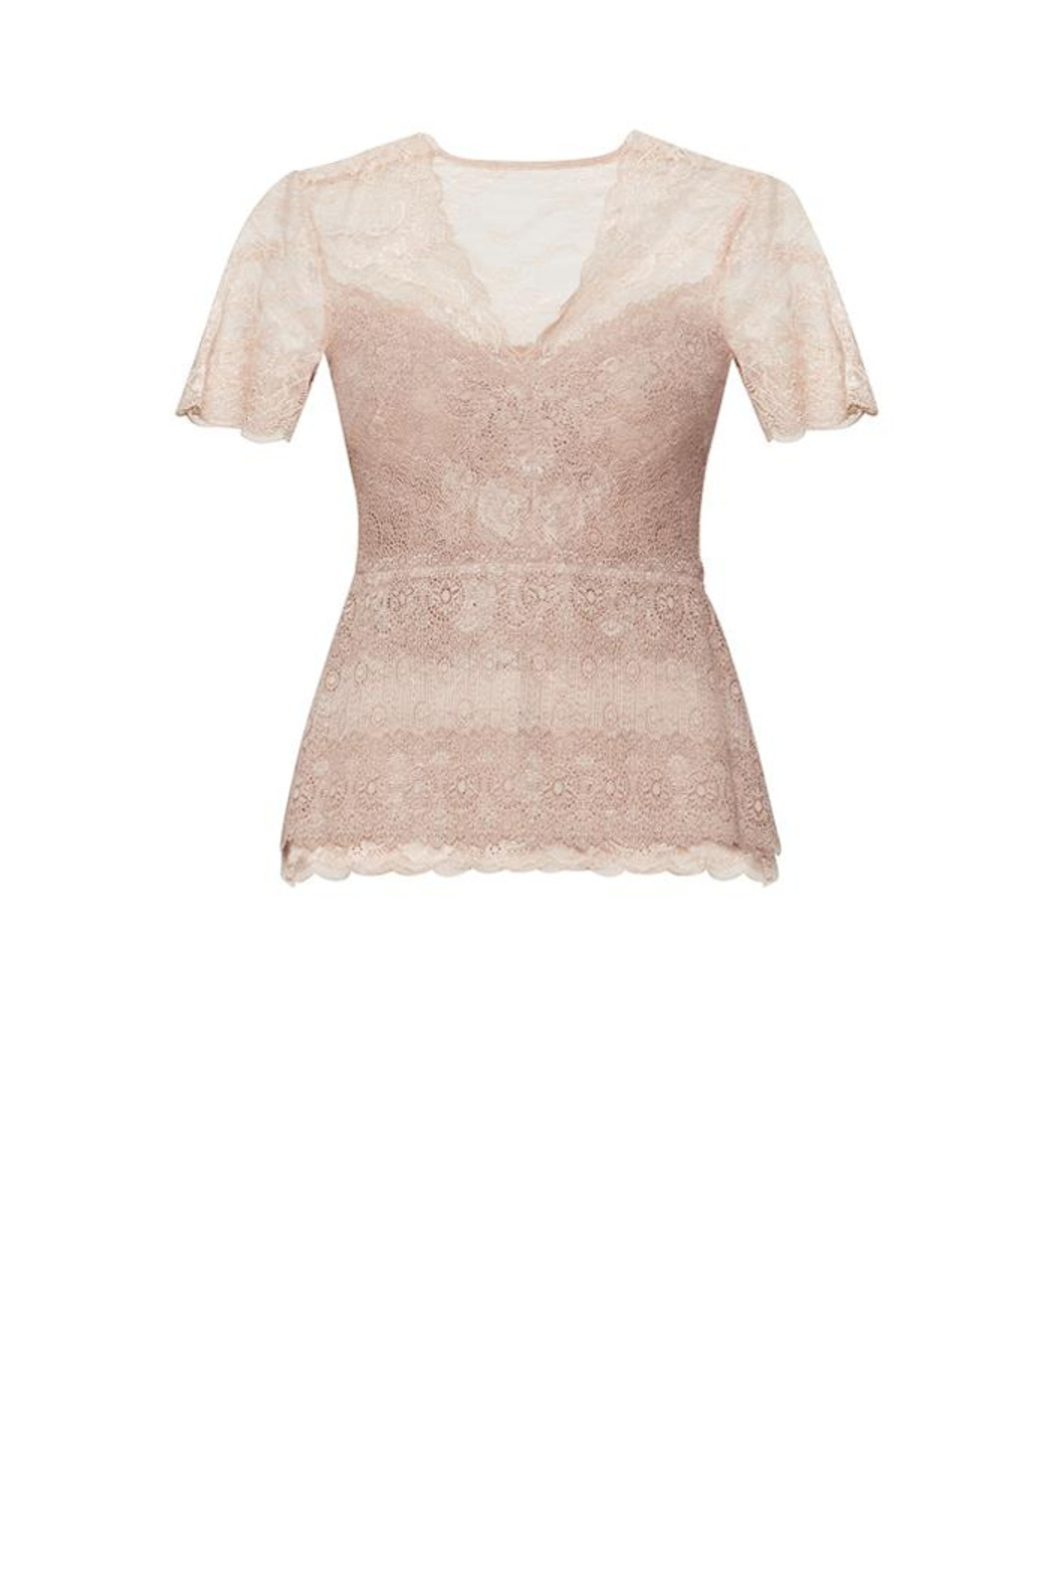 BCBG MAXAZRIA Lace Peplum Top - Back Cropped Image